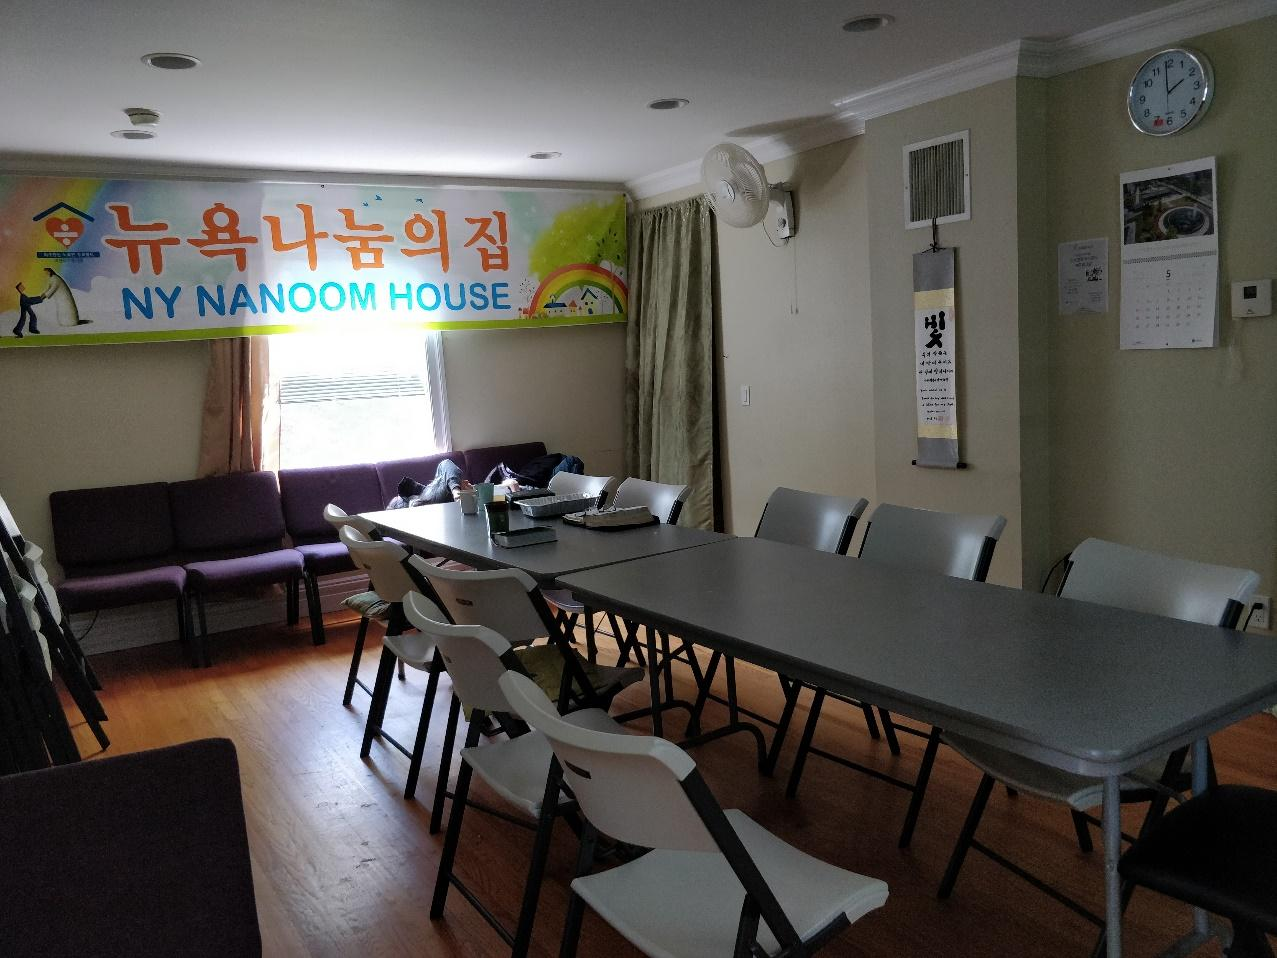 C:\Users\Nanoom House\Downloads\IMG_20190502_135741.jpg